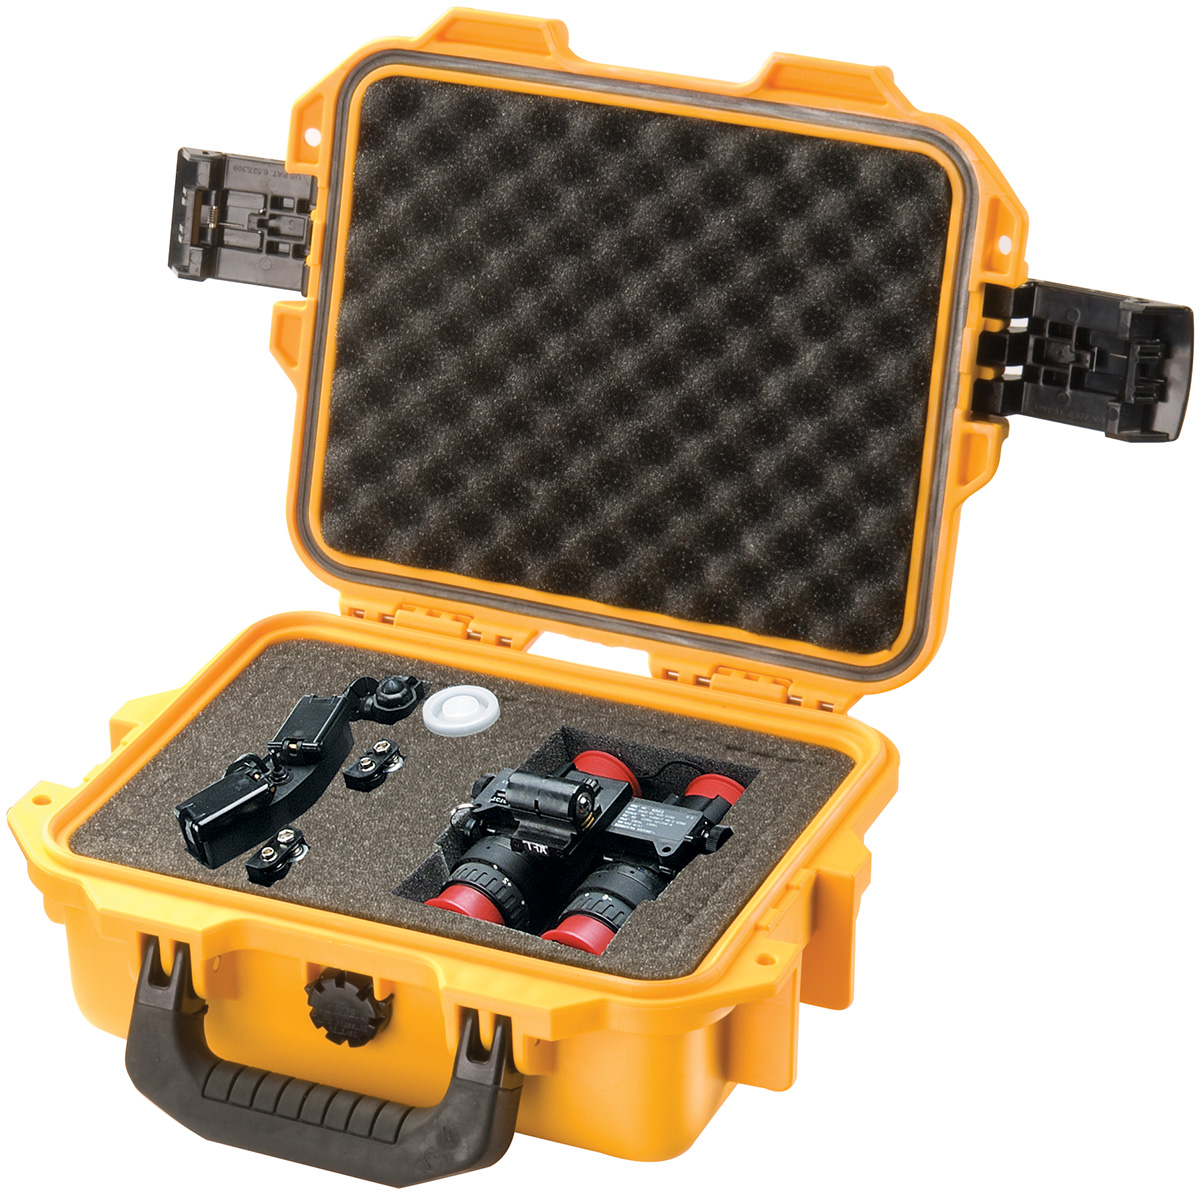 pelican peli products iM2050 hardigg storm 2050 hard case